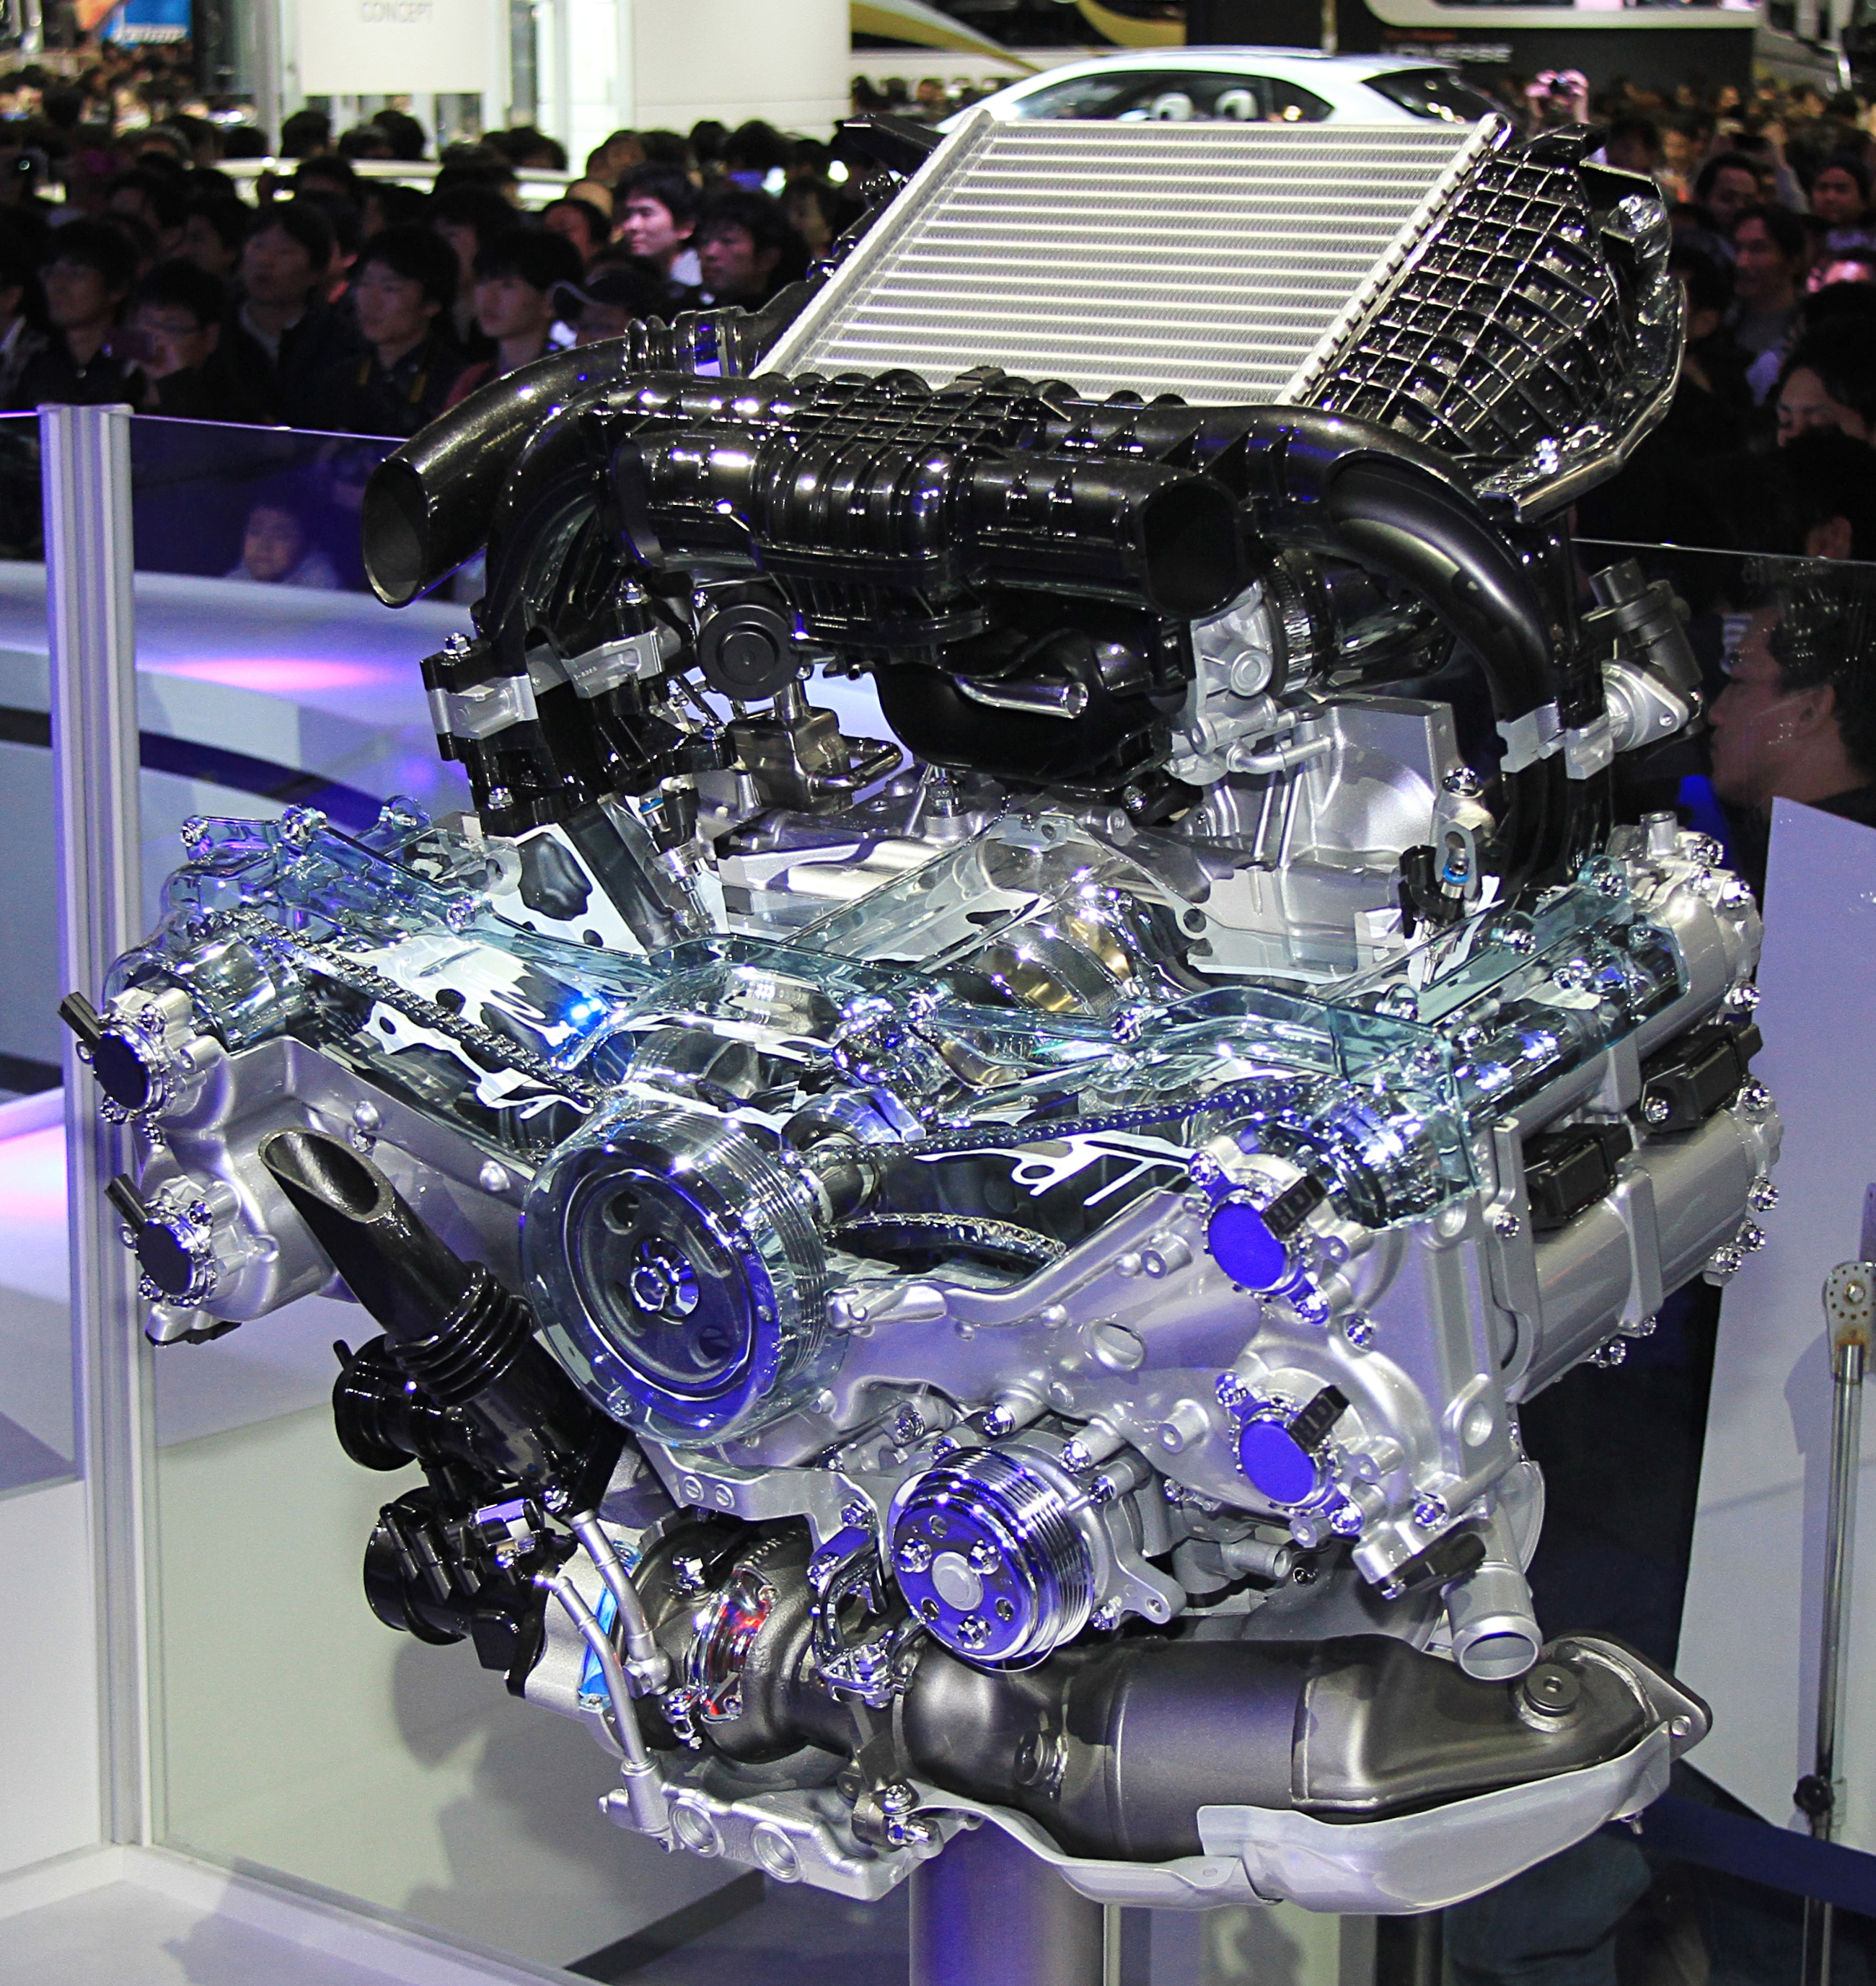 File:Subaru 1.6 DIT engine.jpg - Wikimedia Commons